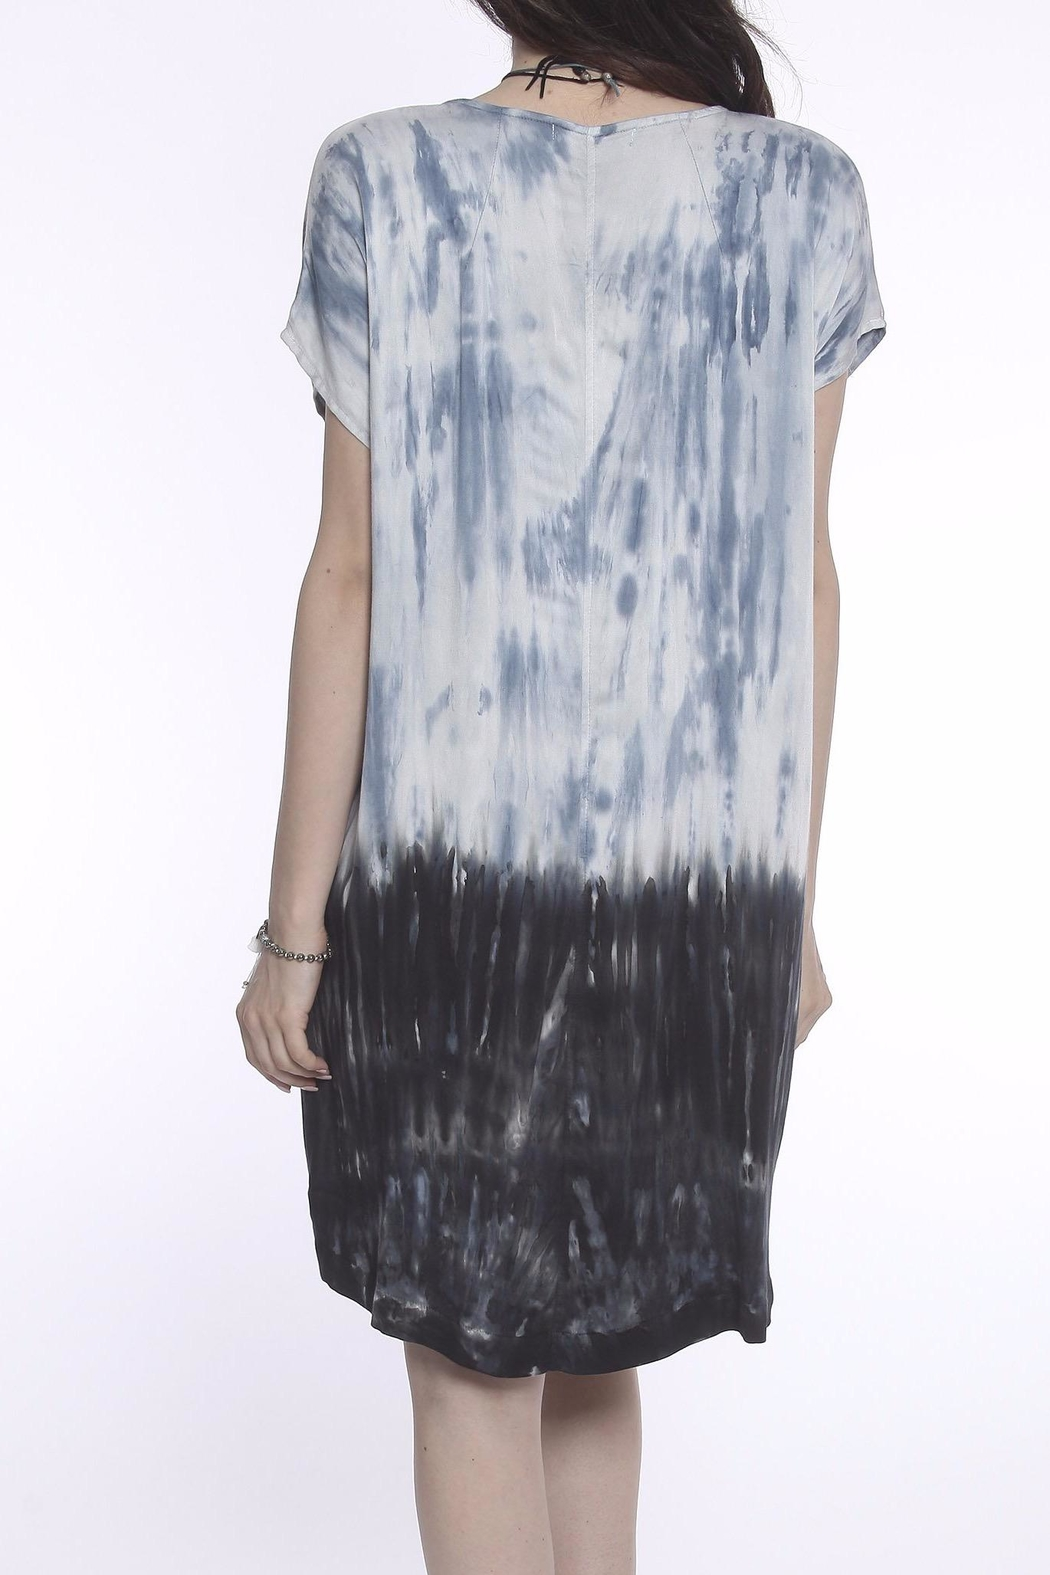 River + Sky  Brooklyn Tunic Dress - Side Cropped Image